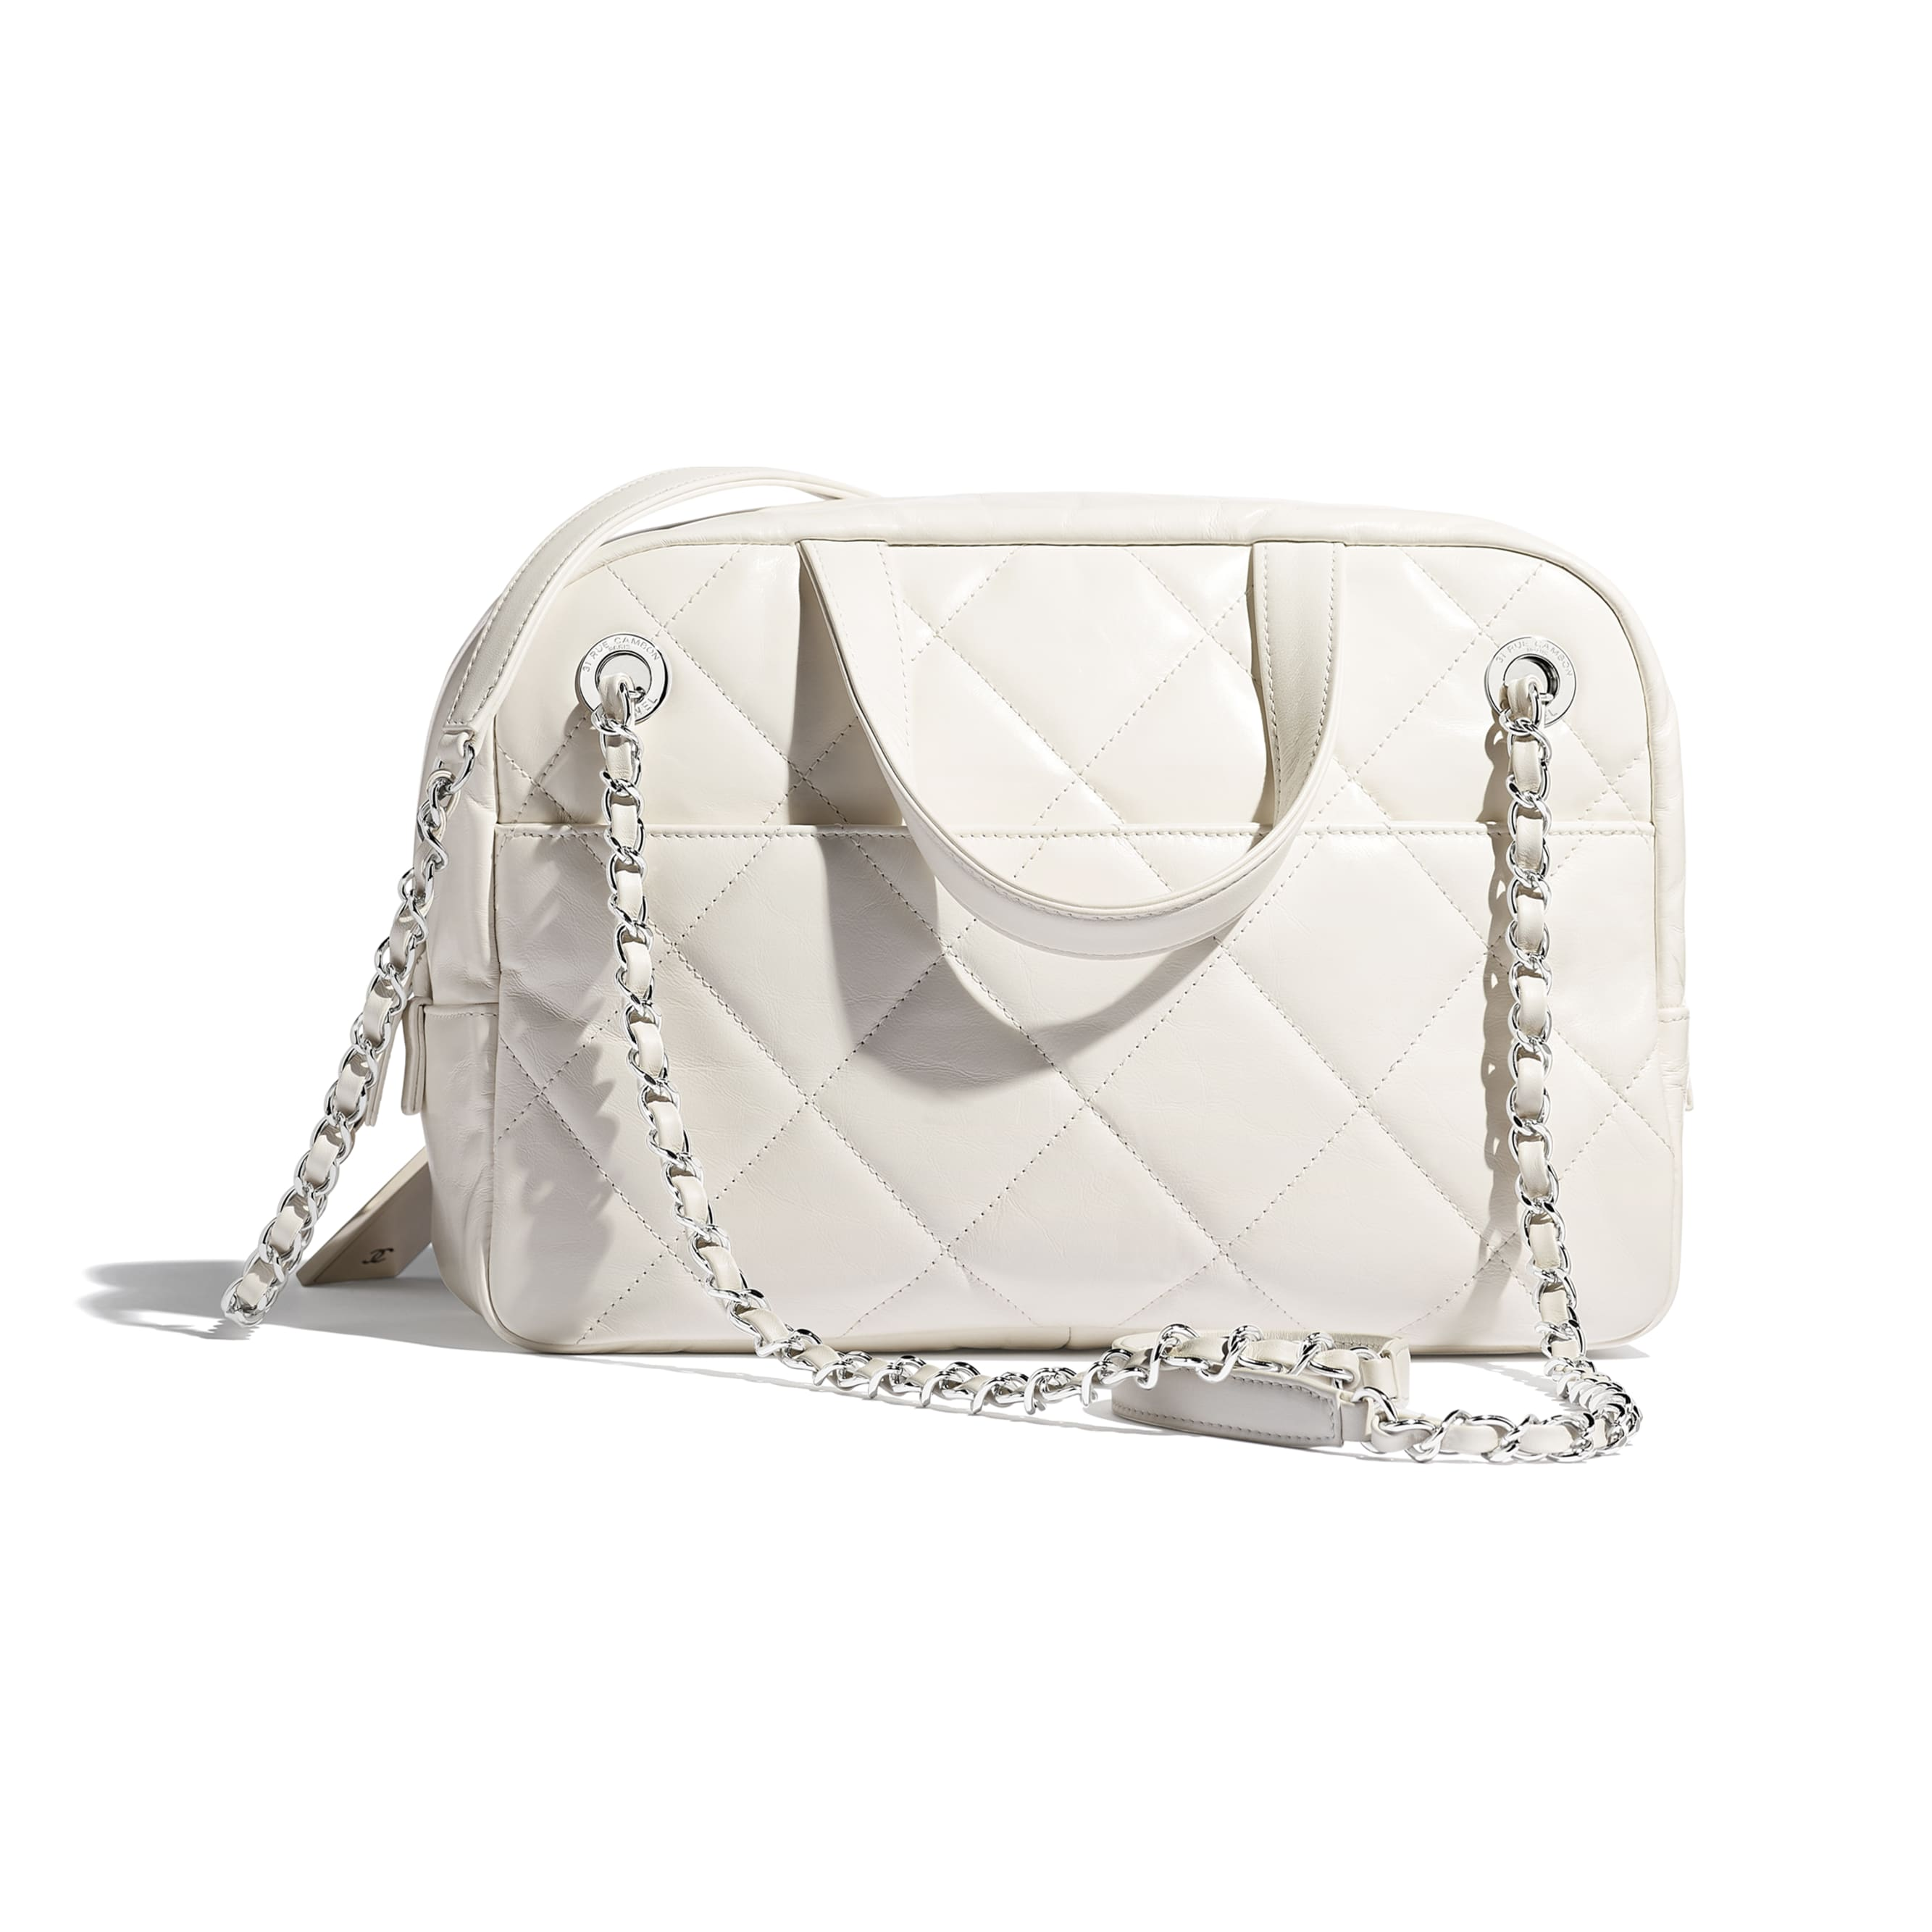 Small Bowling Bag - White - Calfskin & Silver-Tone Metal - CHANEL - Alternative view - see standard sized version